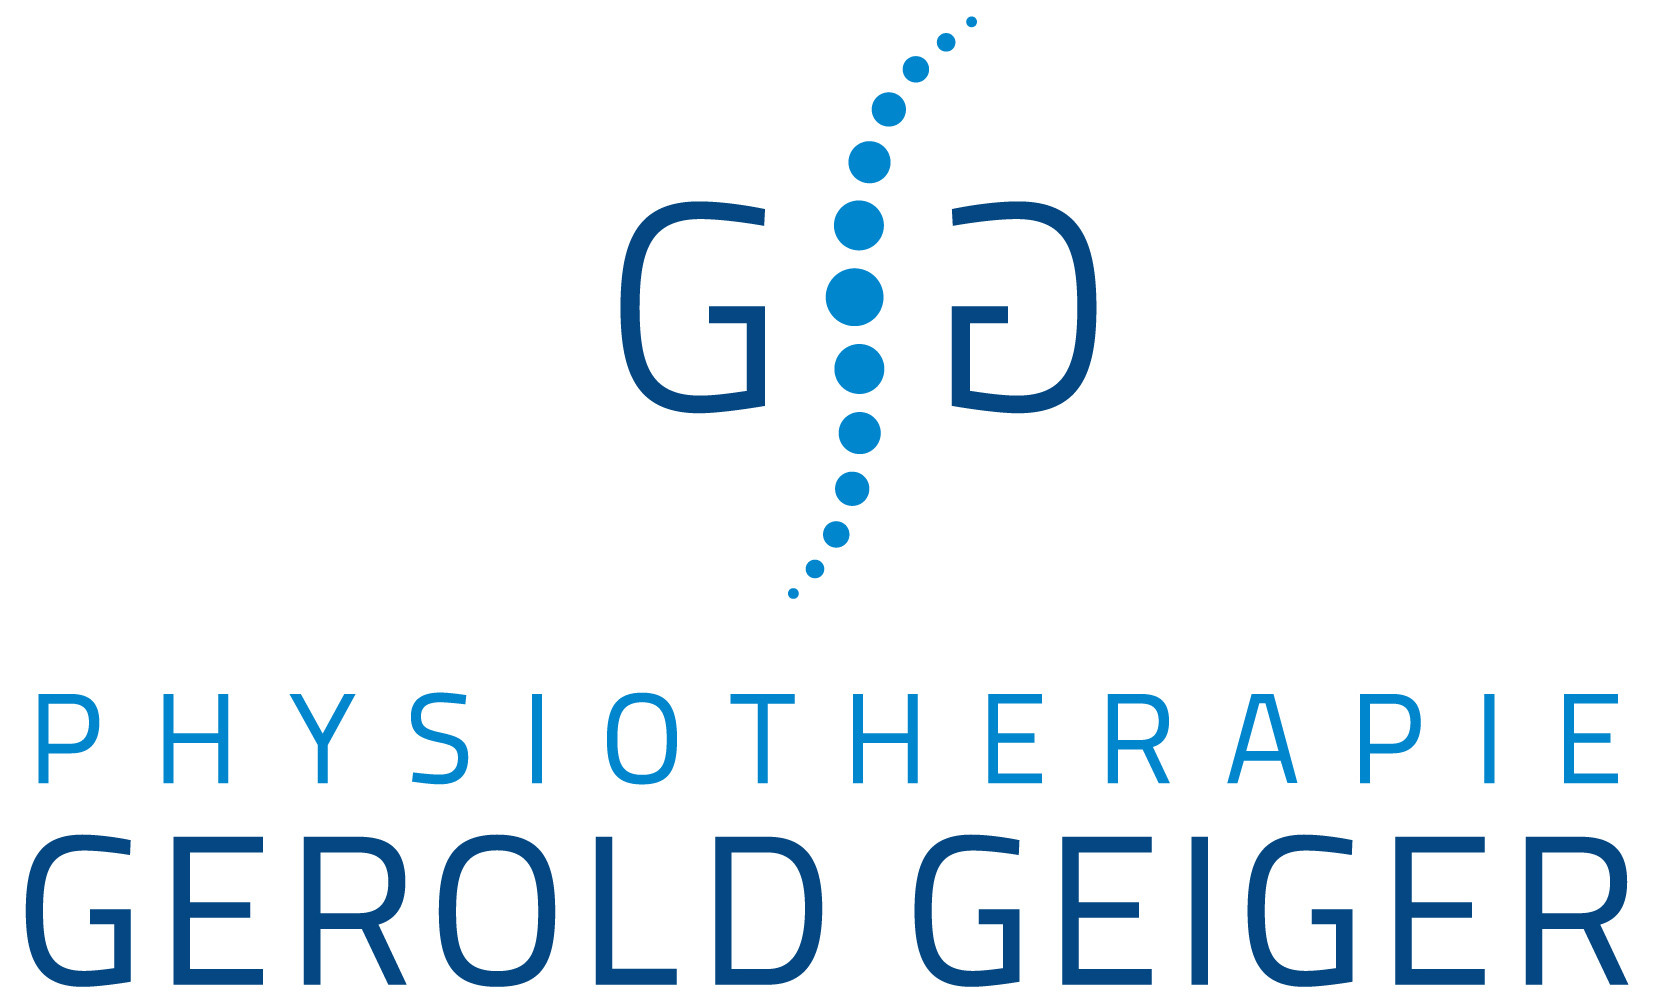 Physiotherapie Gerold Geiger